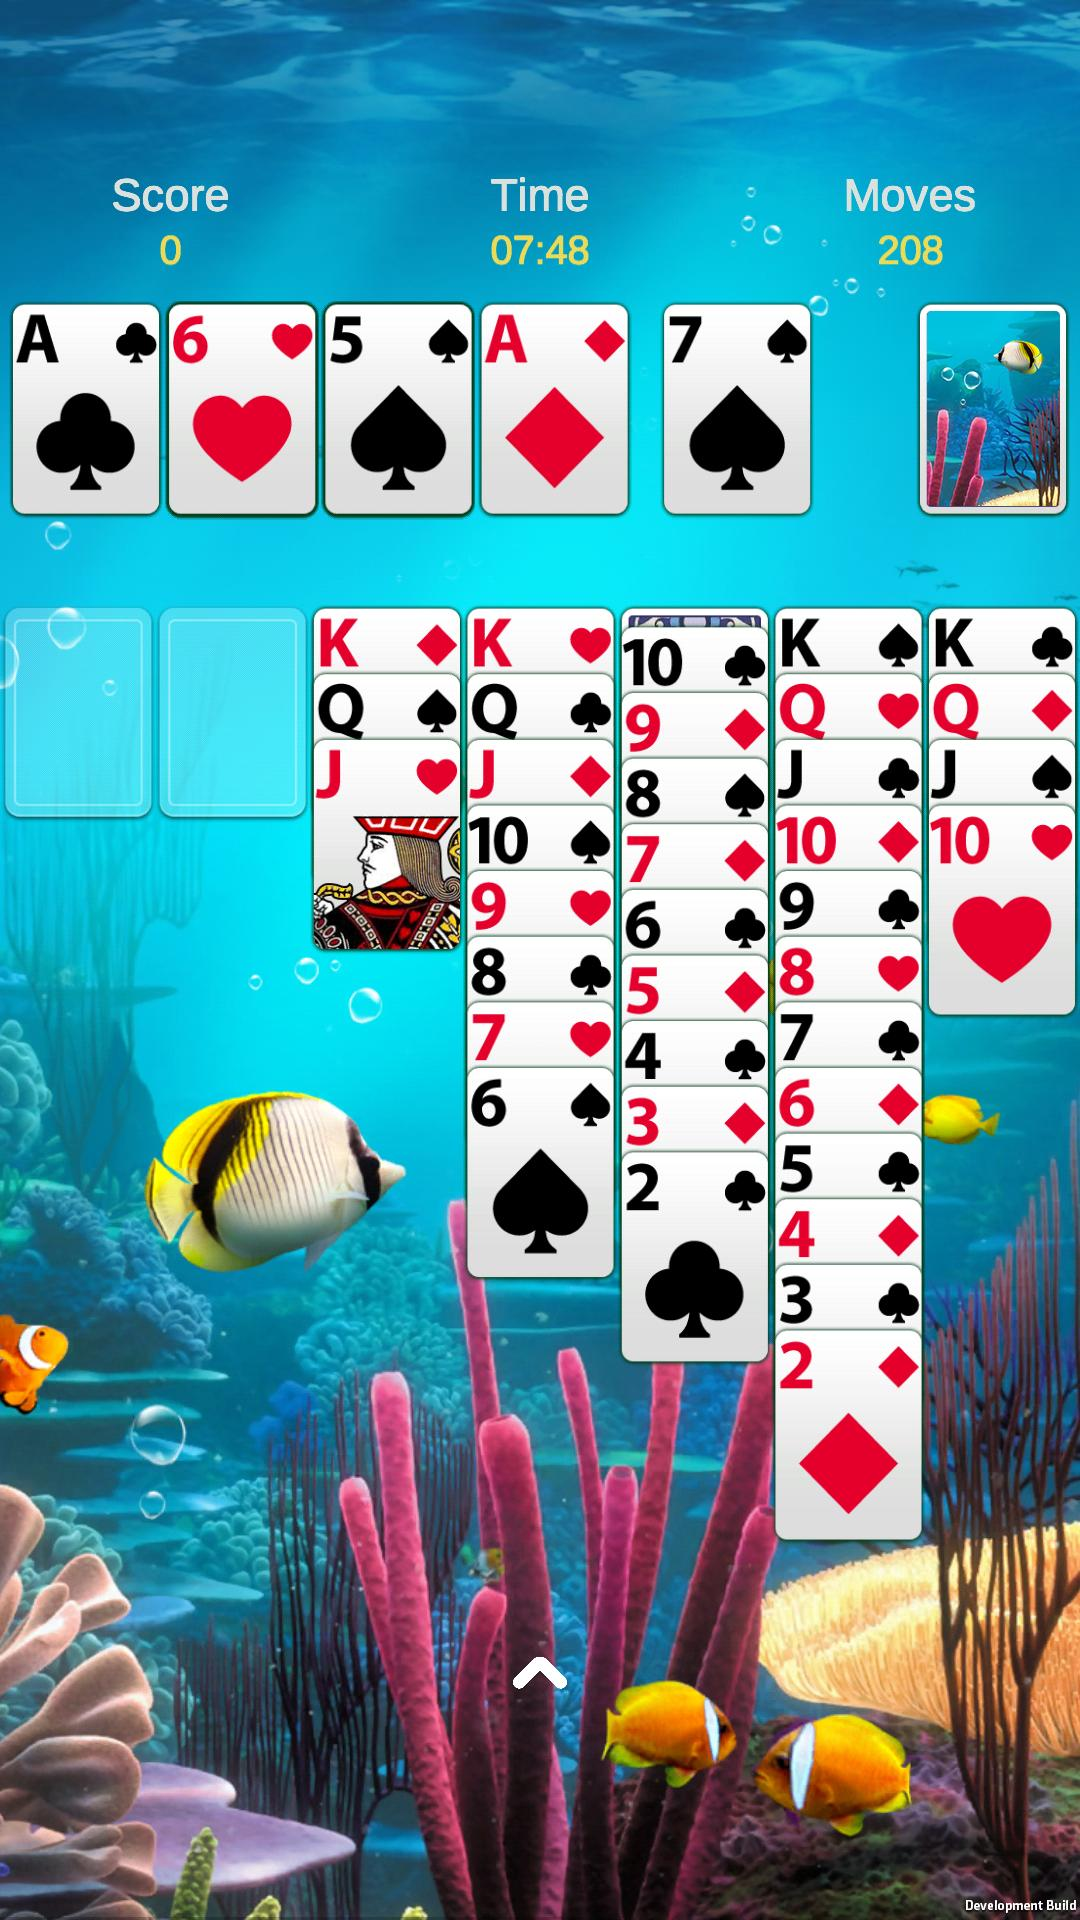 Solitaire - Free Classic Solitaire Card Games 1.8.5 Screenshot 4